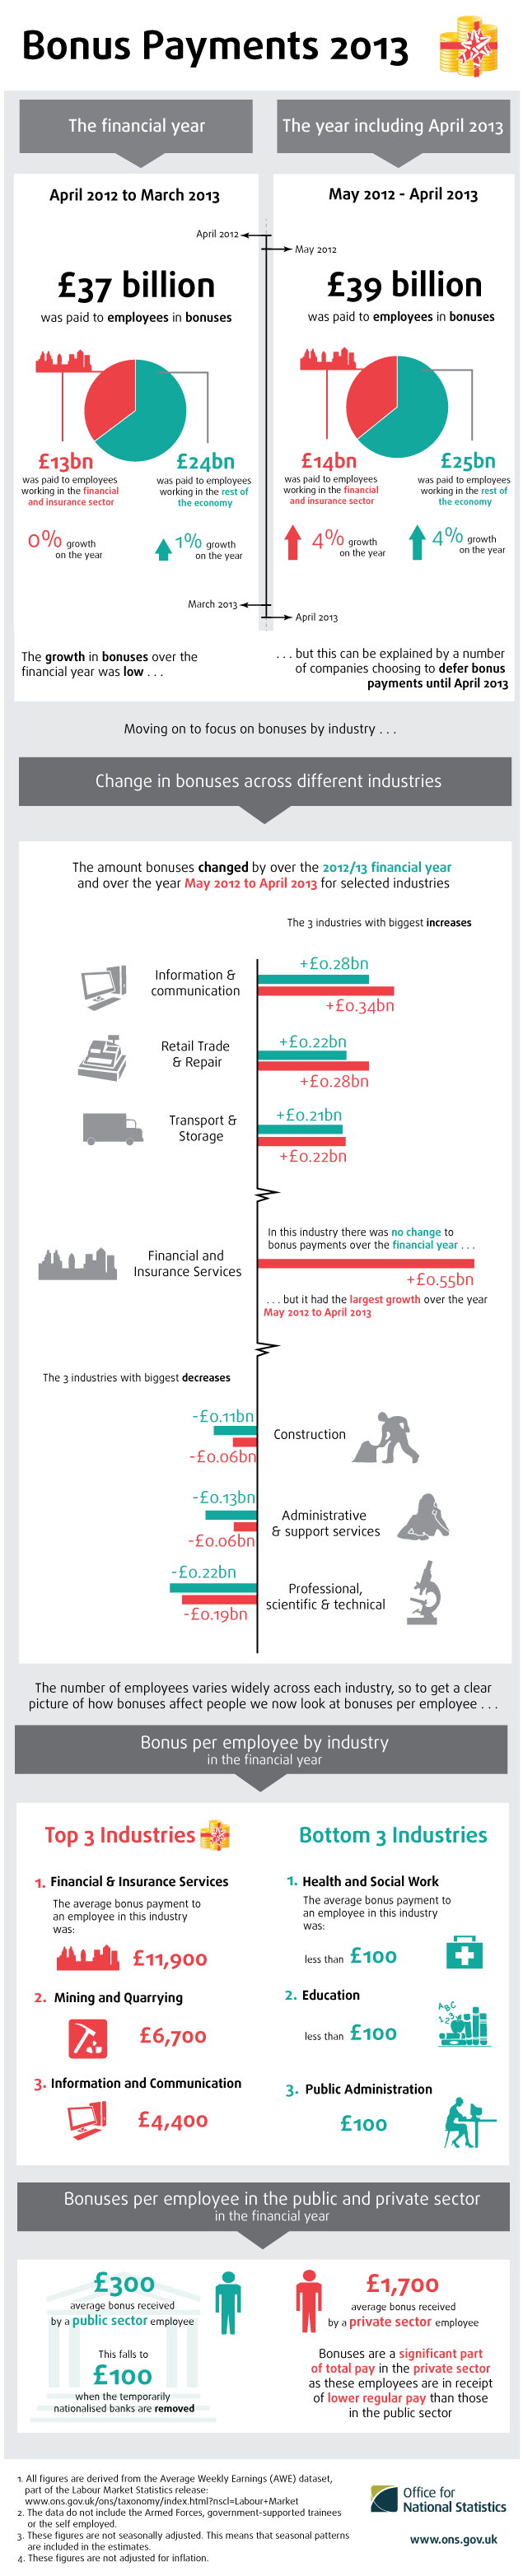 Bonus payments in the UK infographic, 2013